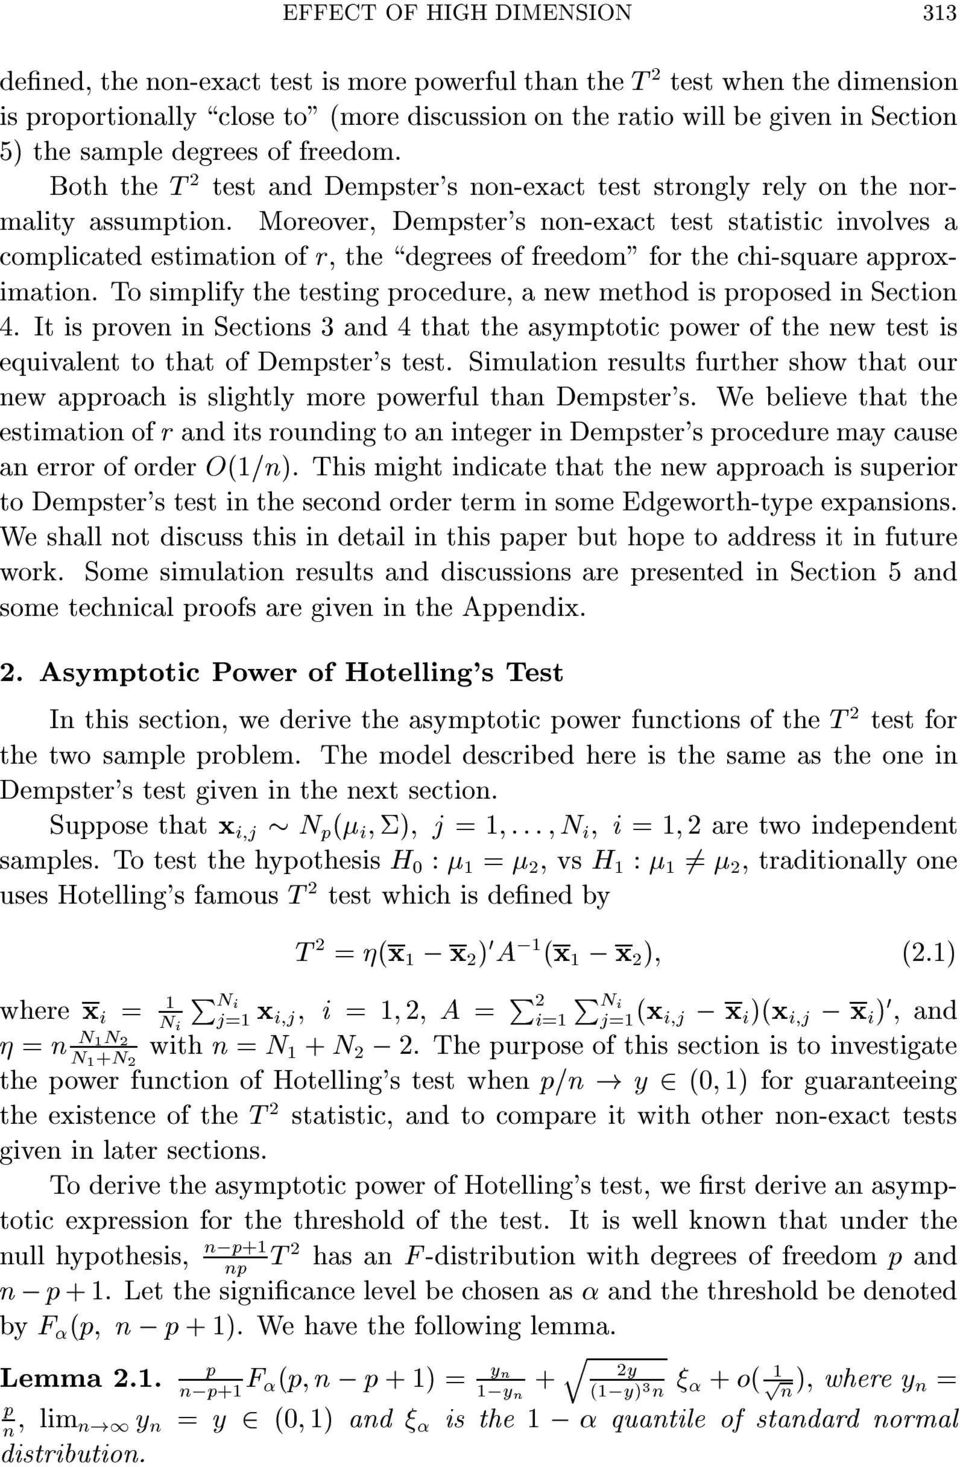 "Moreover, Dempster's o-exact test statistic ivolves a complicated estimatio of r, the \degrees of freedom"" for the chi-square approximatio."